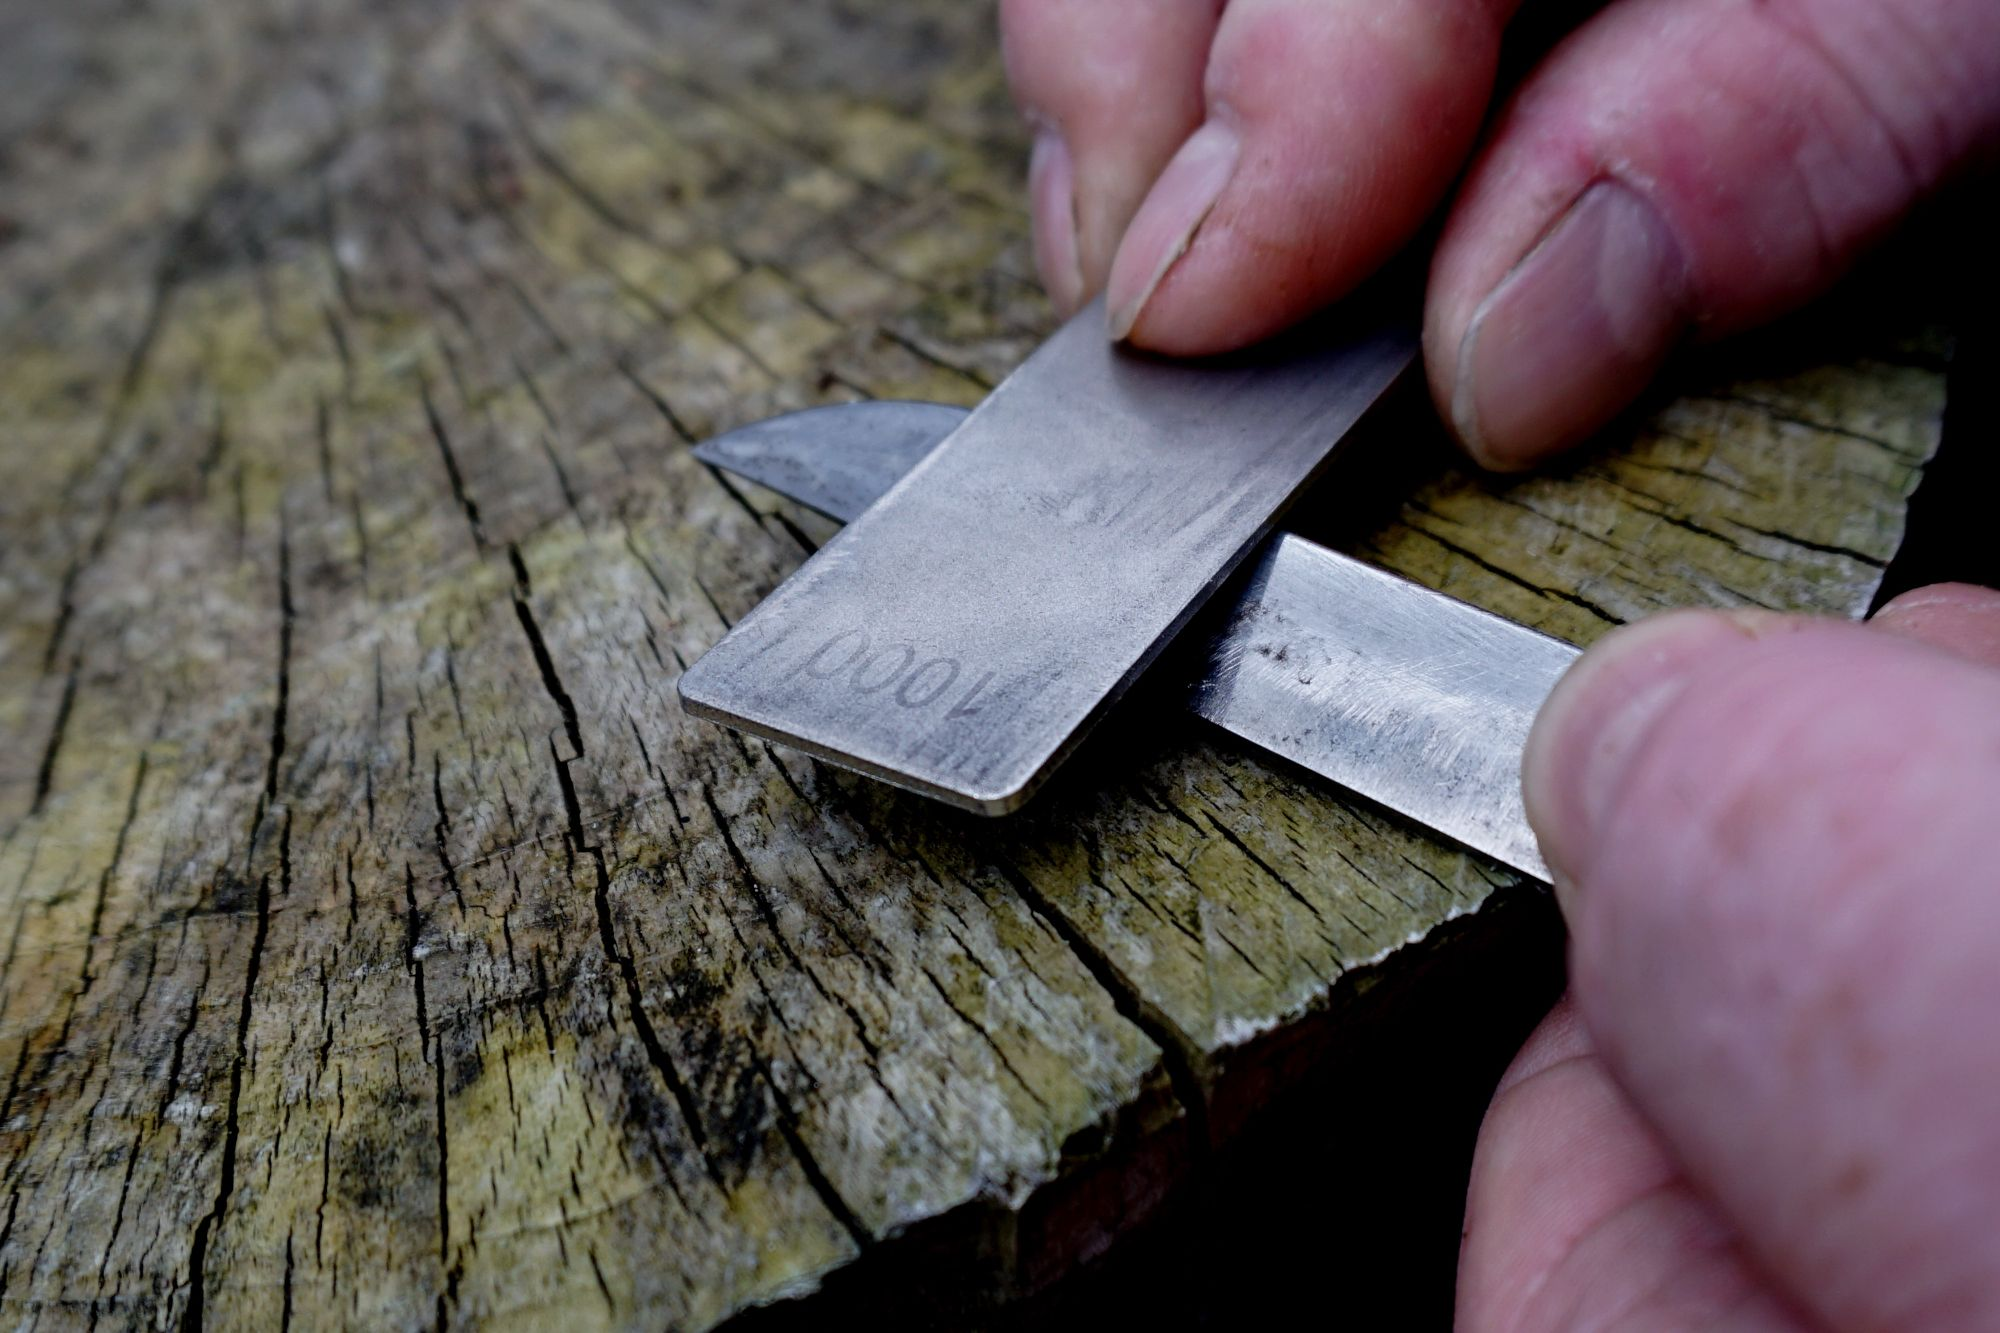 Scrubbing the blade with the  180 grit side of  the diamond whetstone